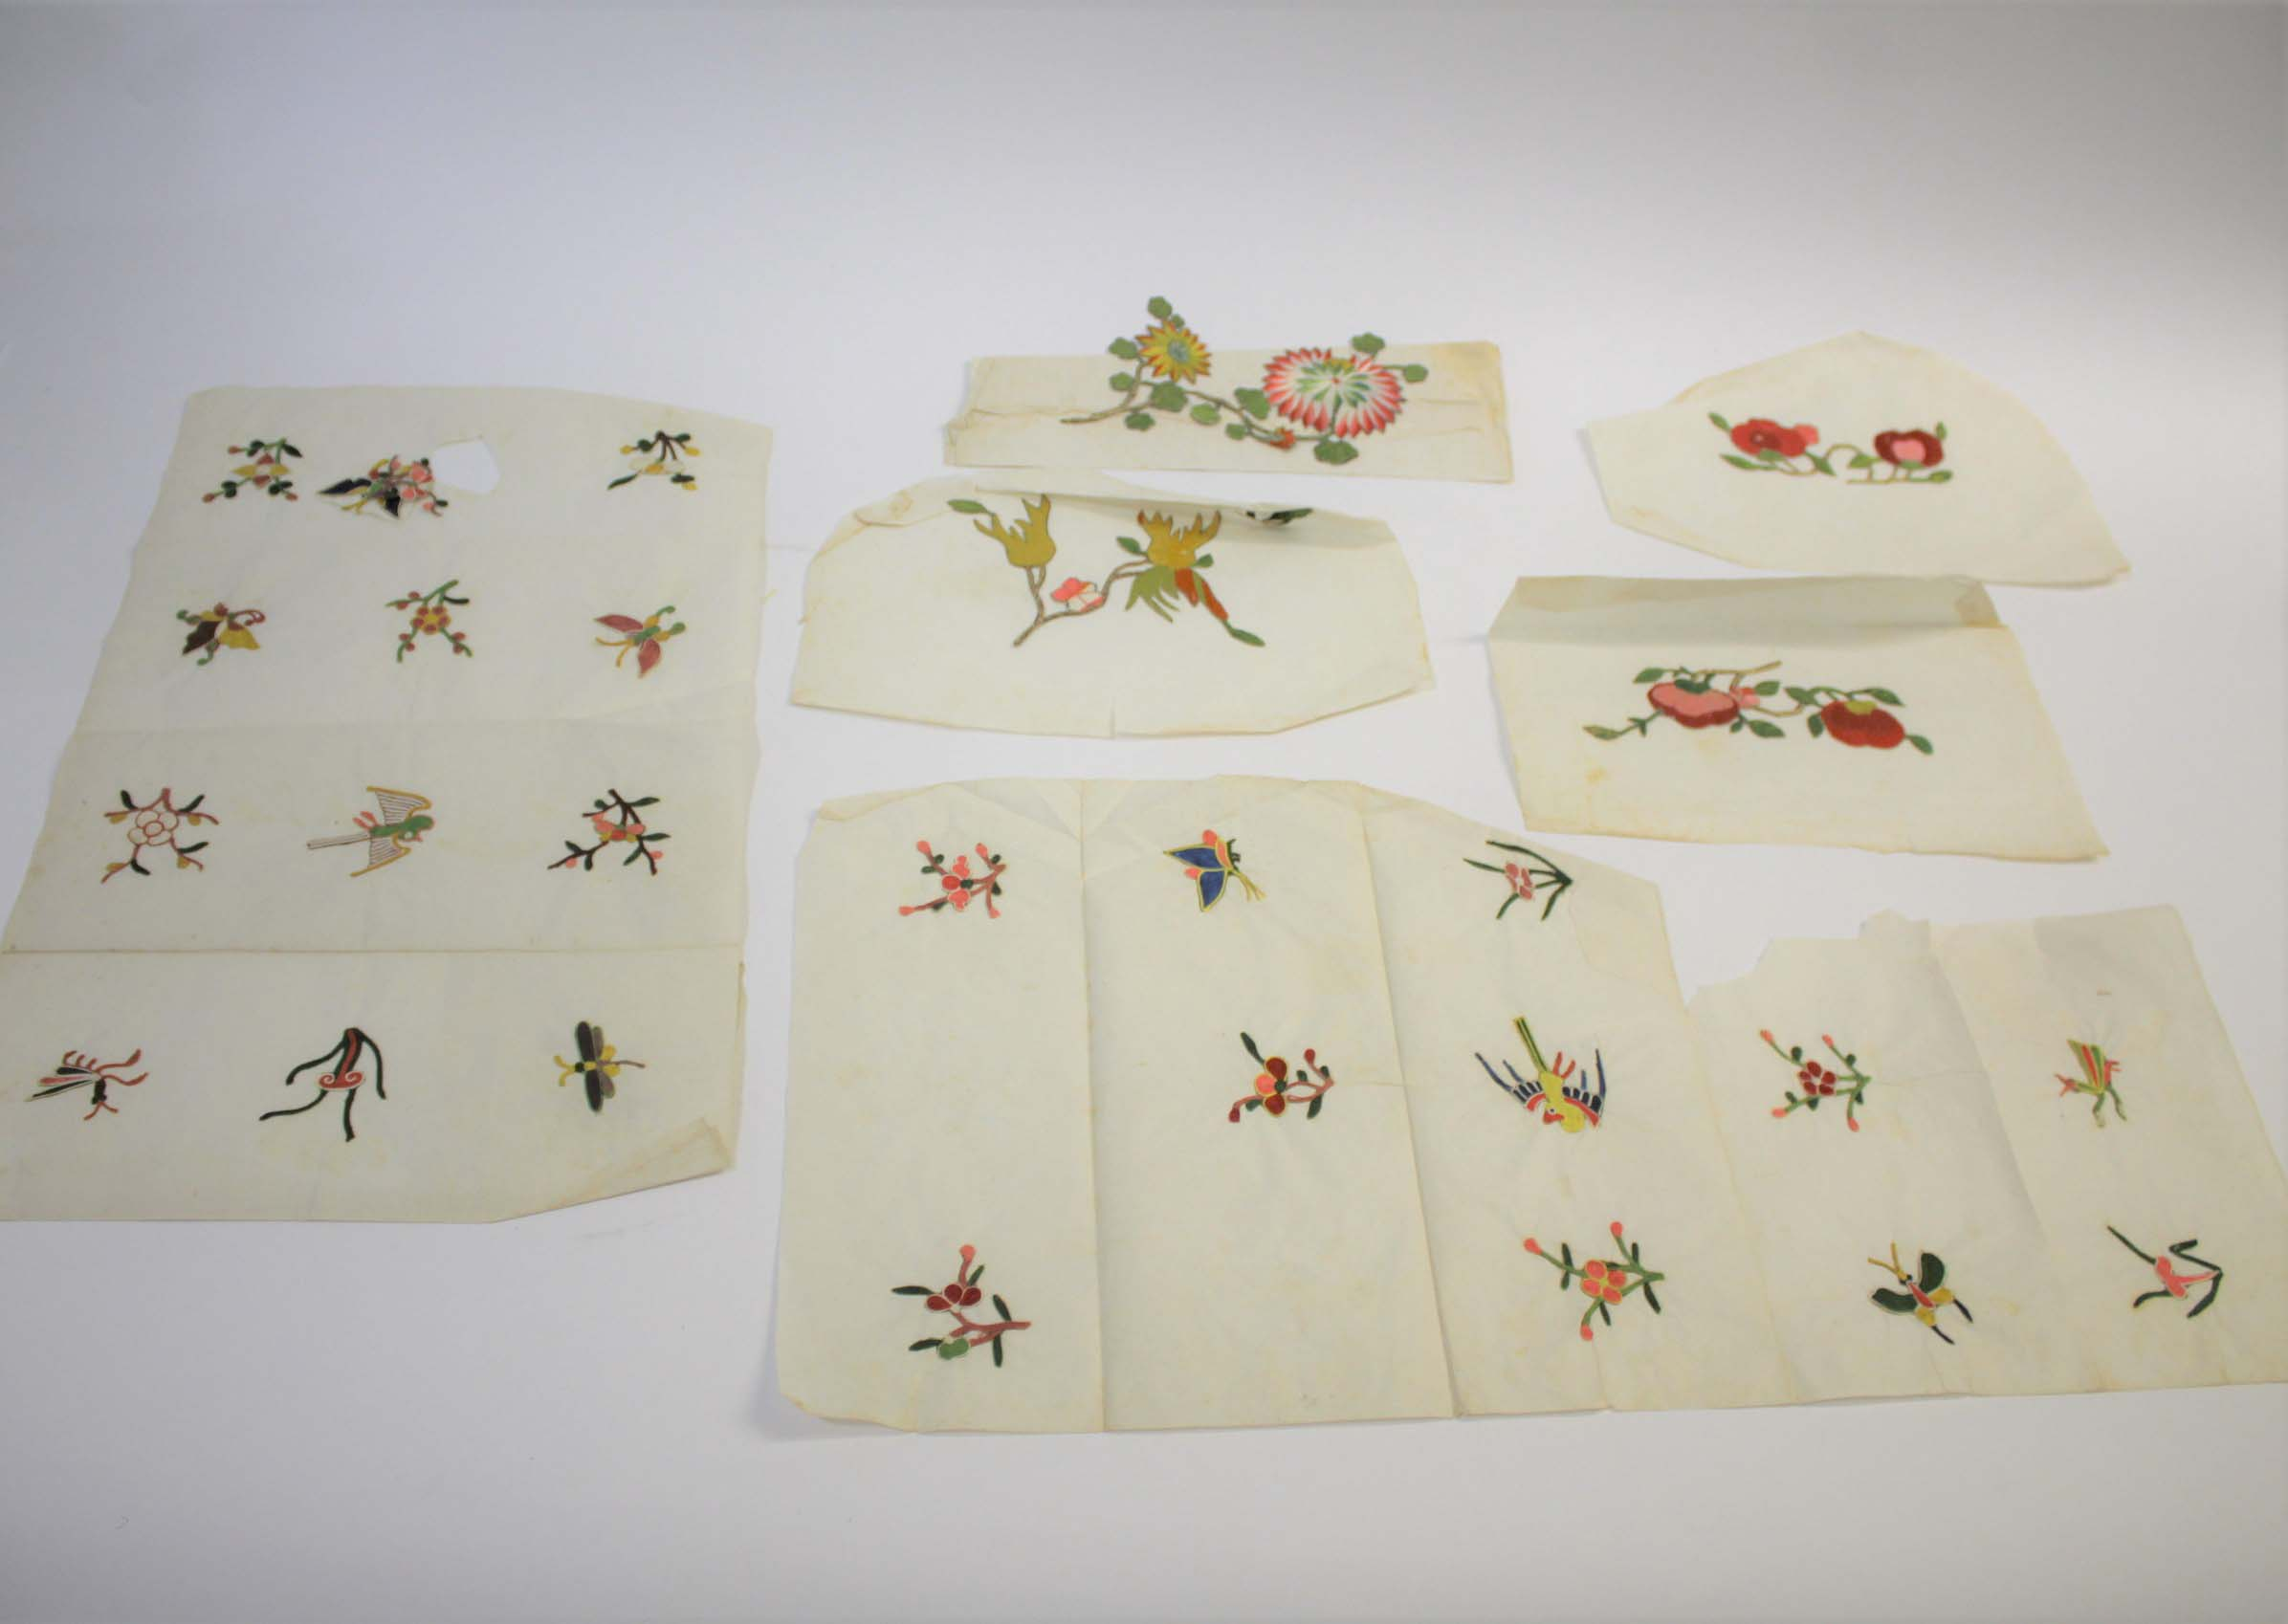 Lot 1855 - 19THC CHINESE SILK EMBROIDERIES a qty of late 19thc Chinese applique silk embroideries of plants,